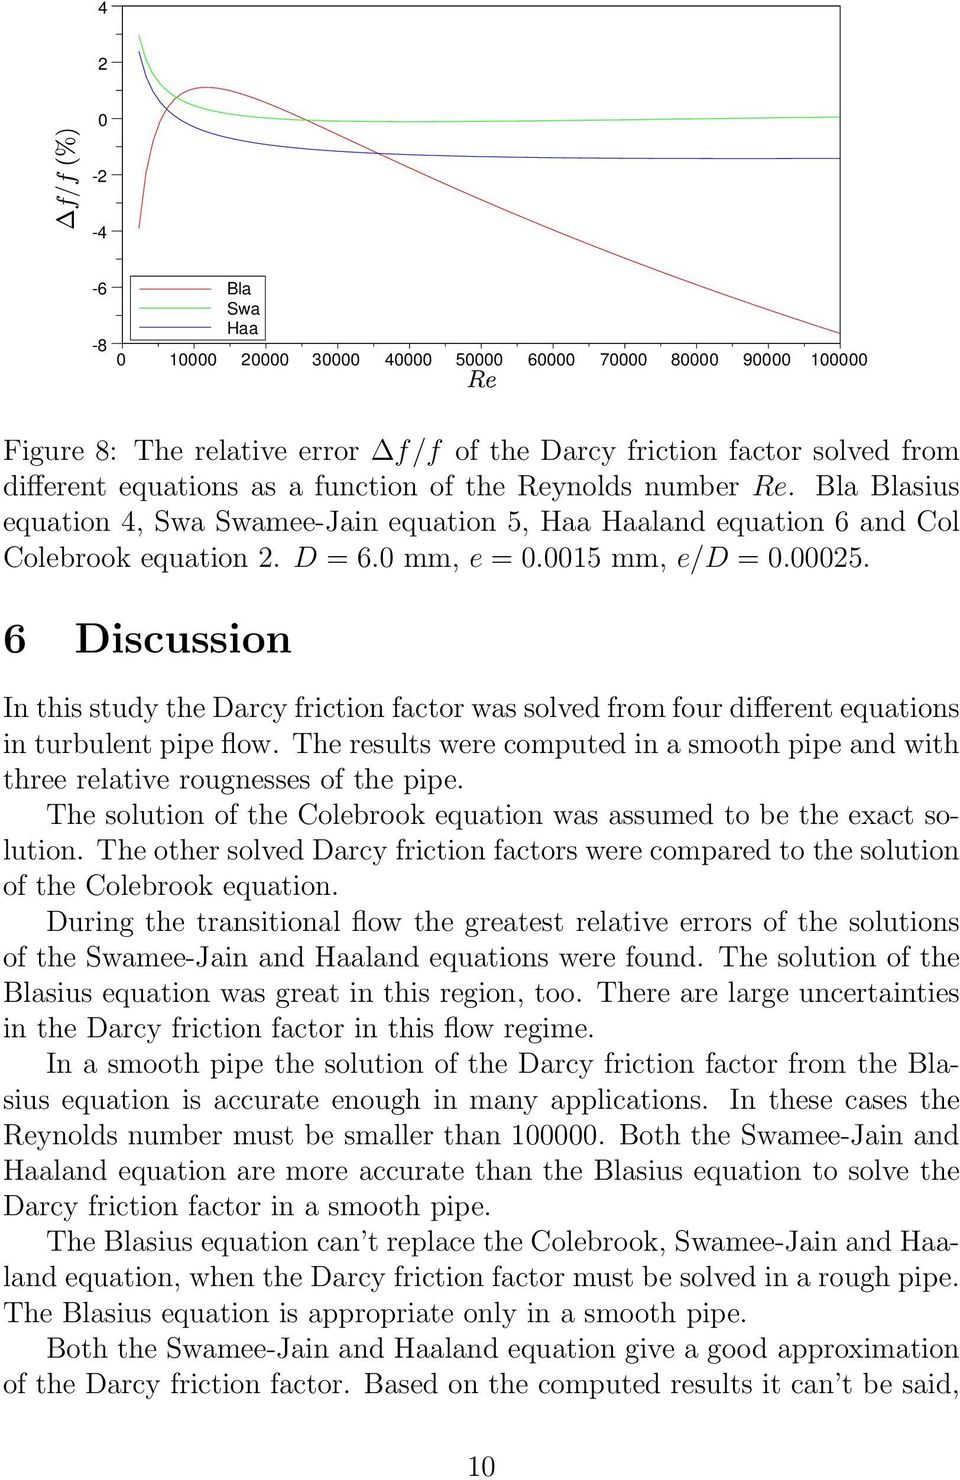 Darcy Friction Factor Formulae in Turbulent Pipe Flow - PDF